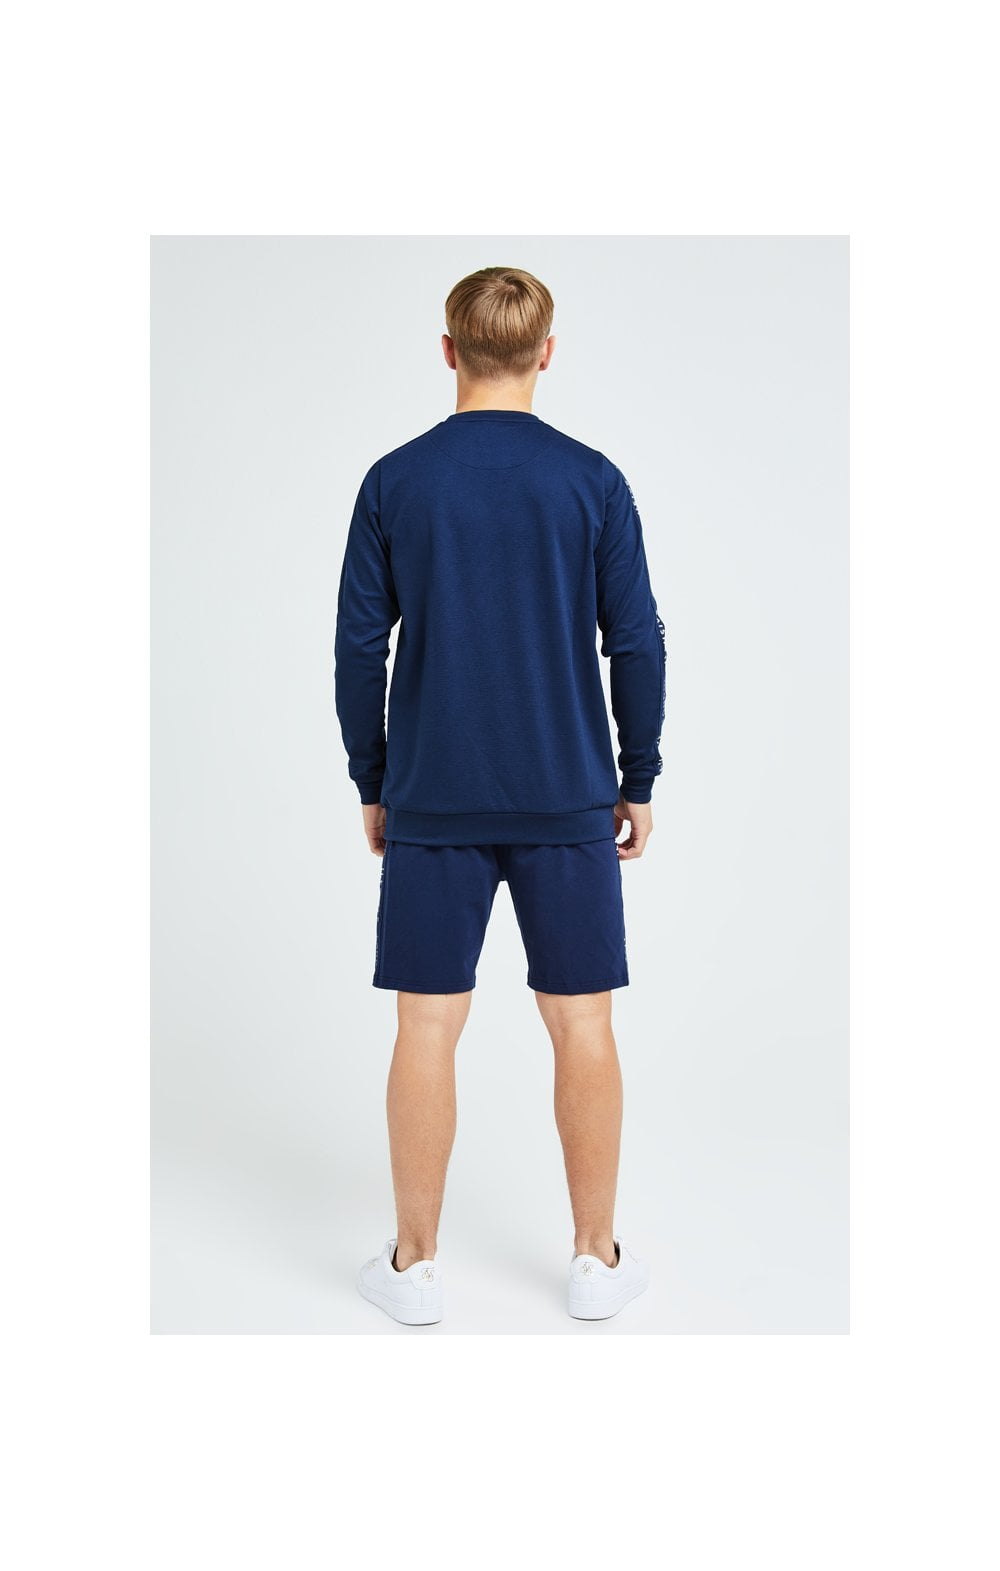 Load image into Gallery viewer, Illusive London Legacy Crew Sweater - Navy & Cream (6)